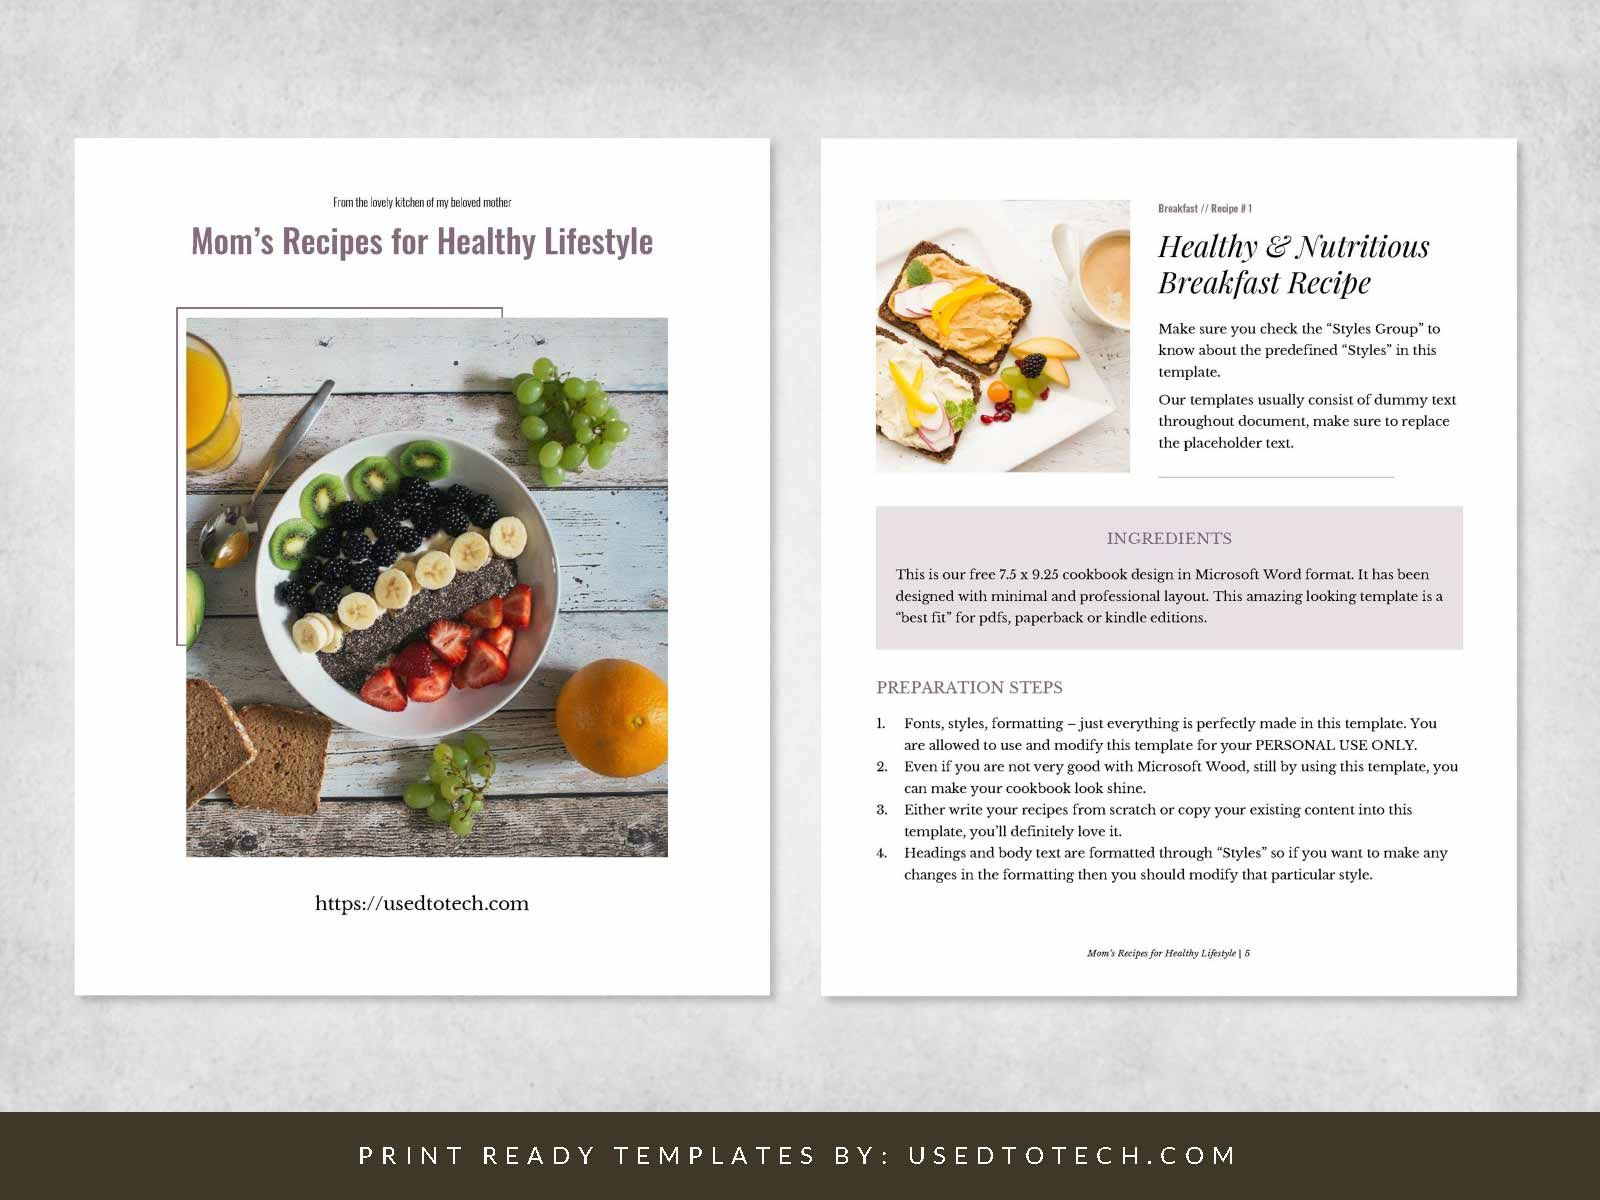 004 Surprising Make Your Own Cookbook Template Free High Resolution  DownloadFull